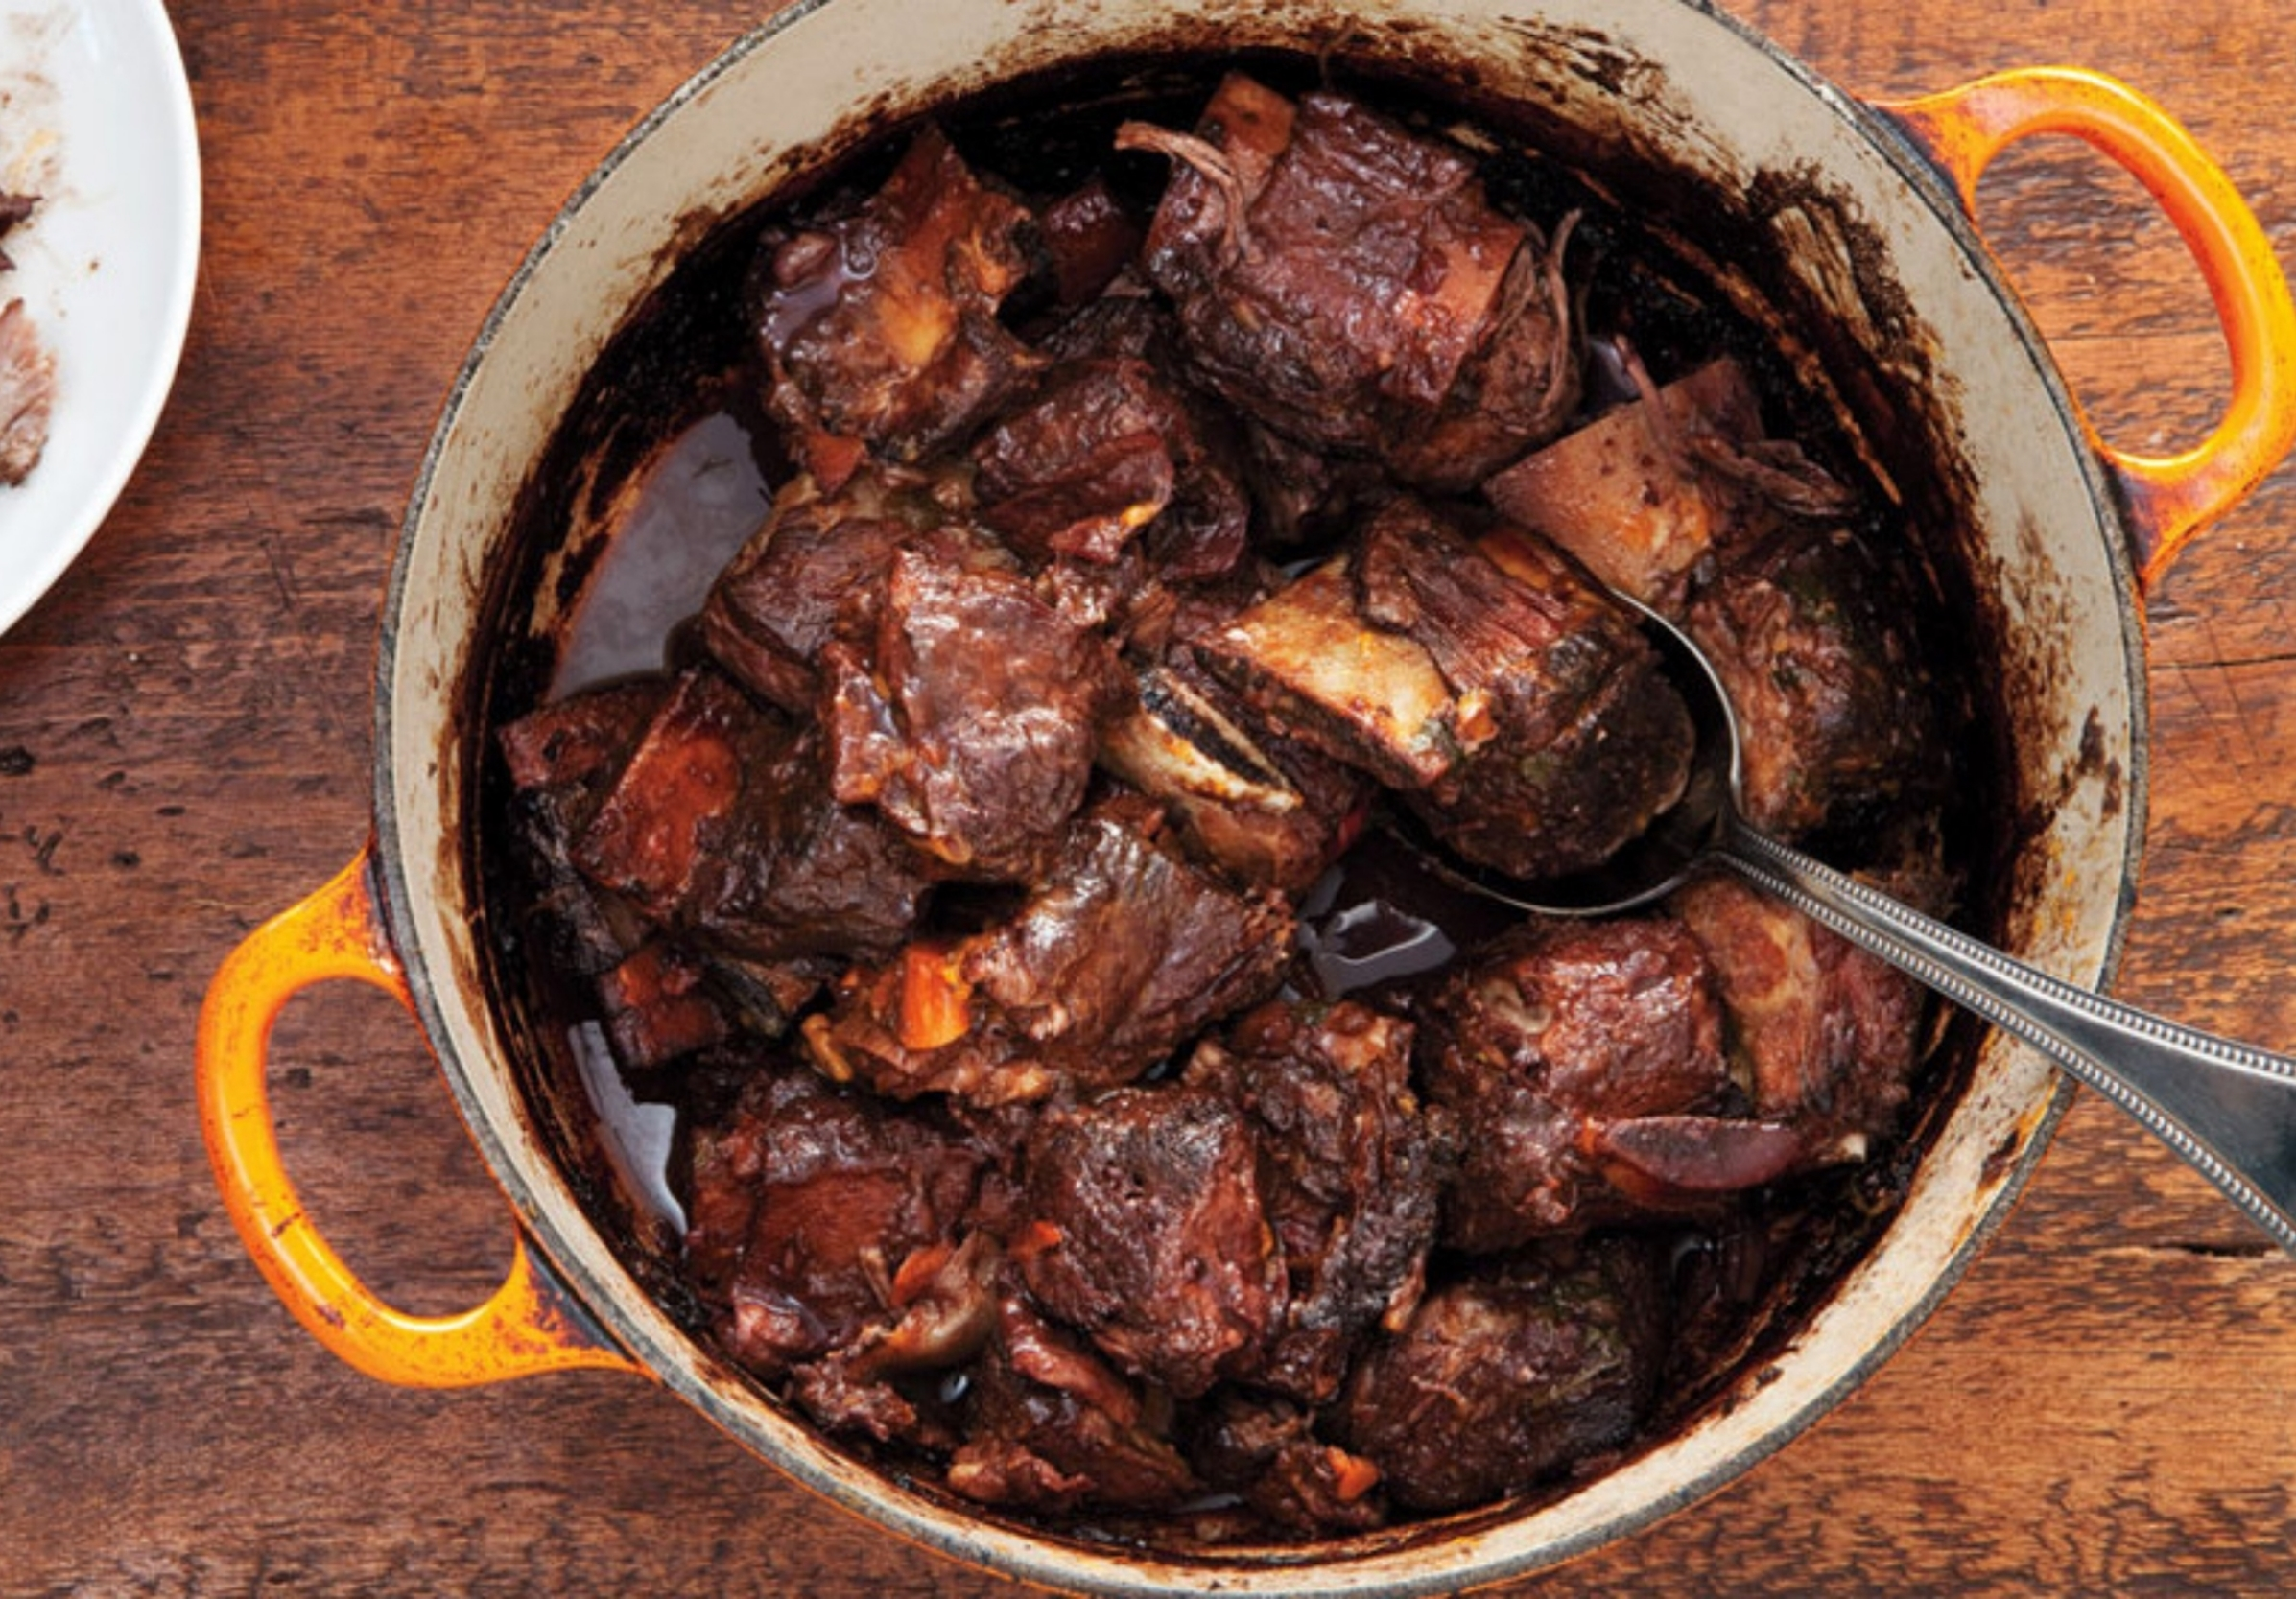 red-wine-braised-short-ribs-940x560.jpg